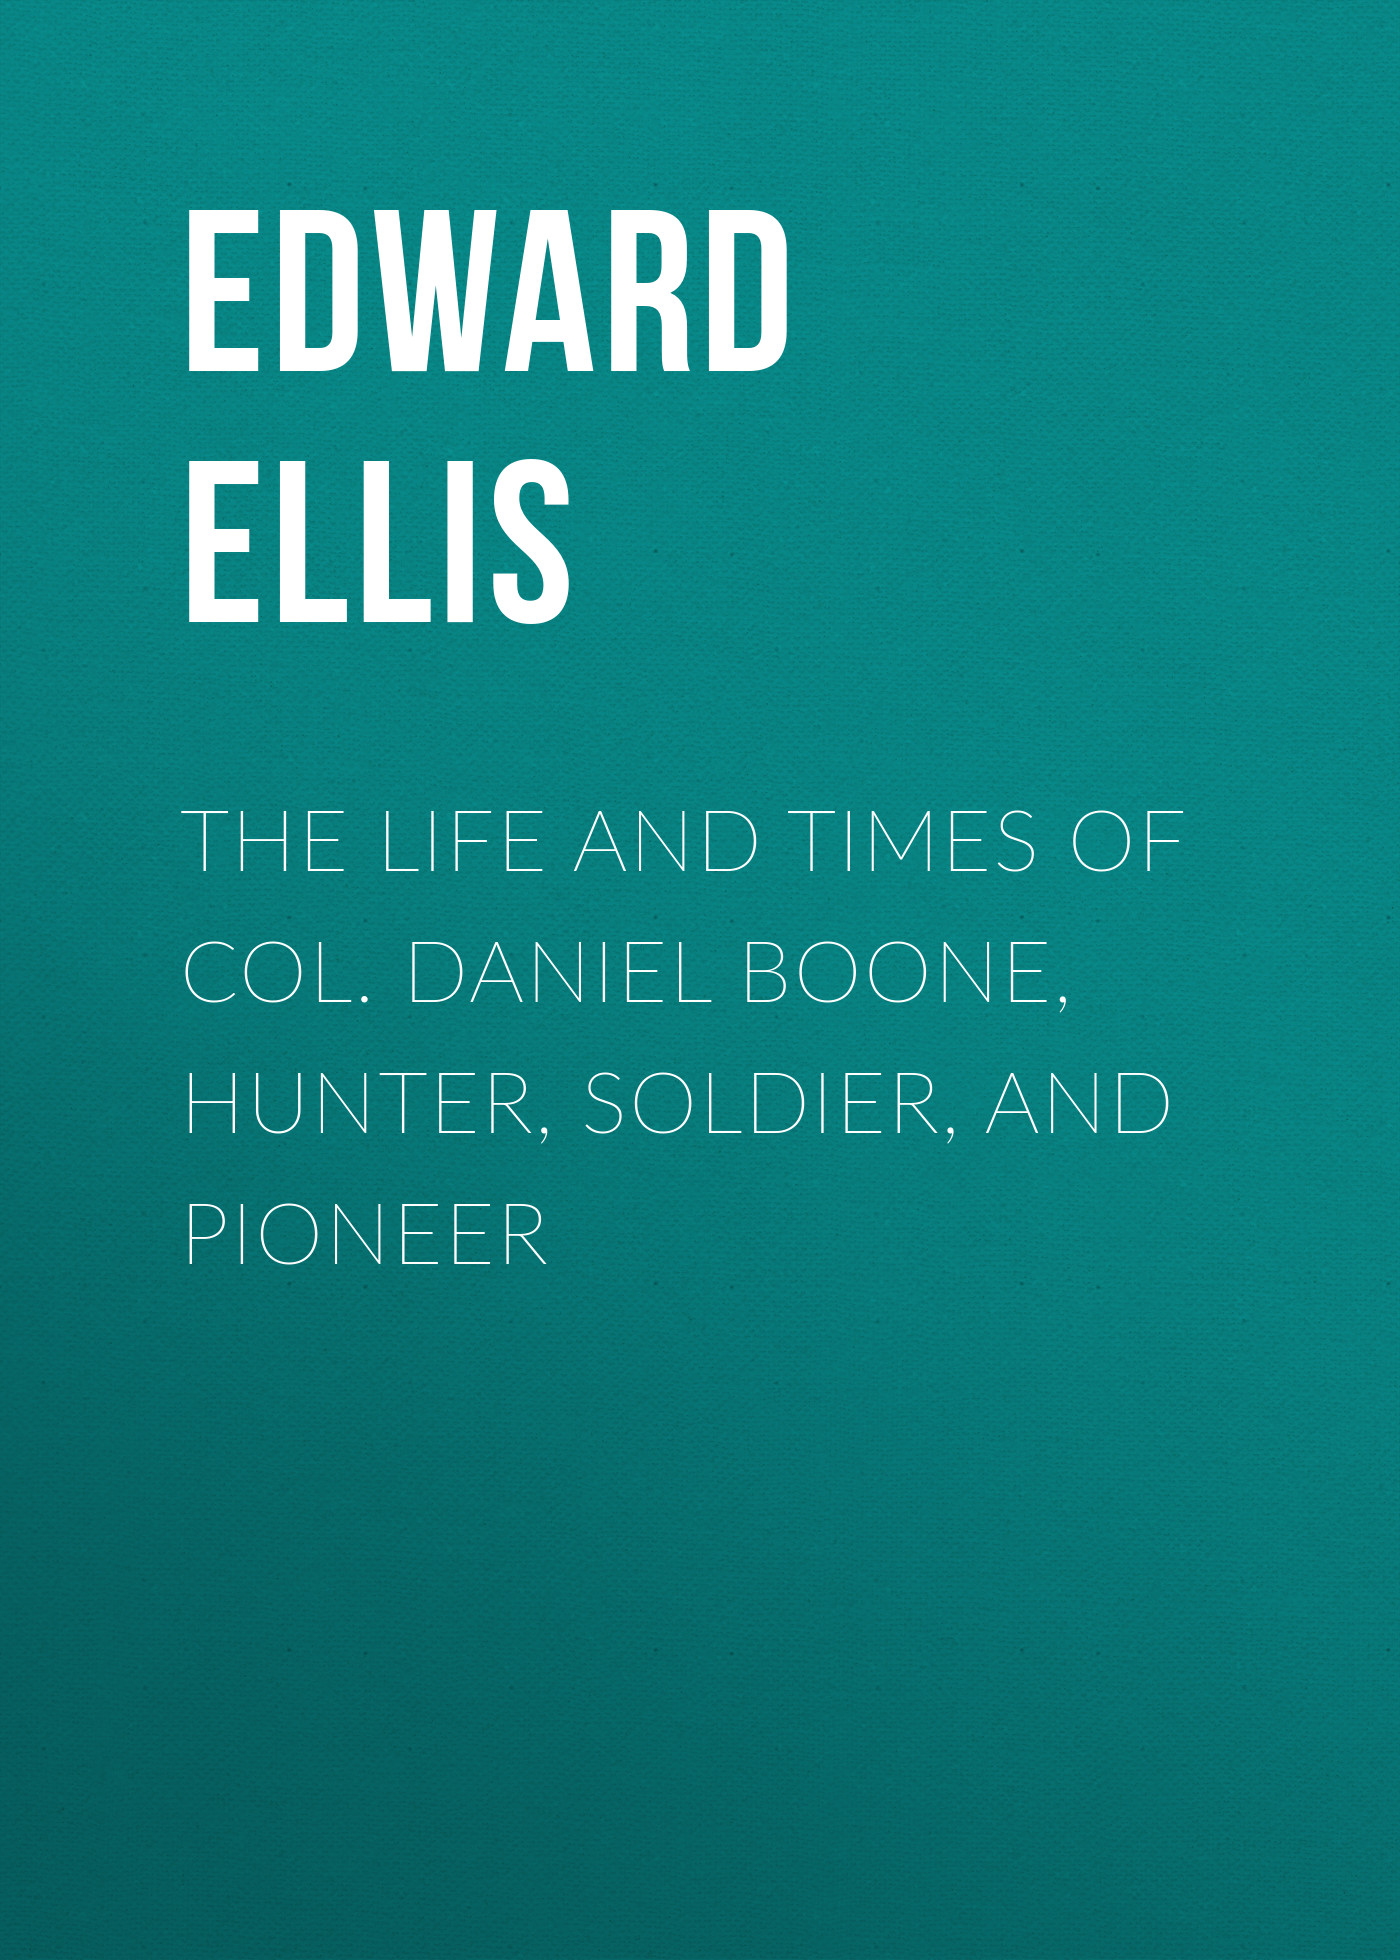 Ellis Edward Sylvester The Life and Times of Col. Daniel Boone, Hunter, Soldier, and Pioneer ellis edward sylvester the life and times of col daniel boone hunter soldier and pioneer